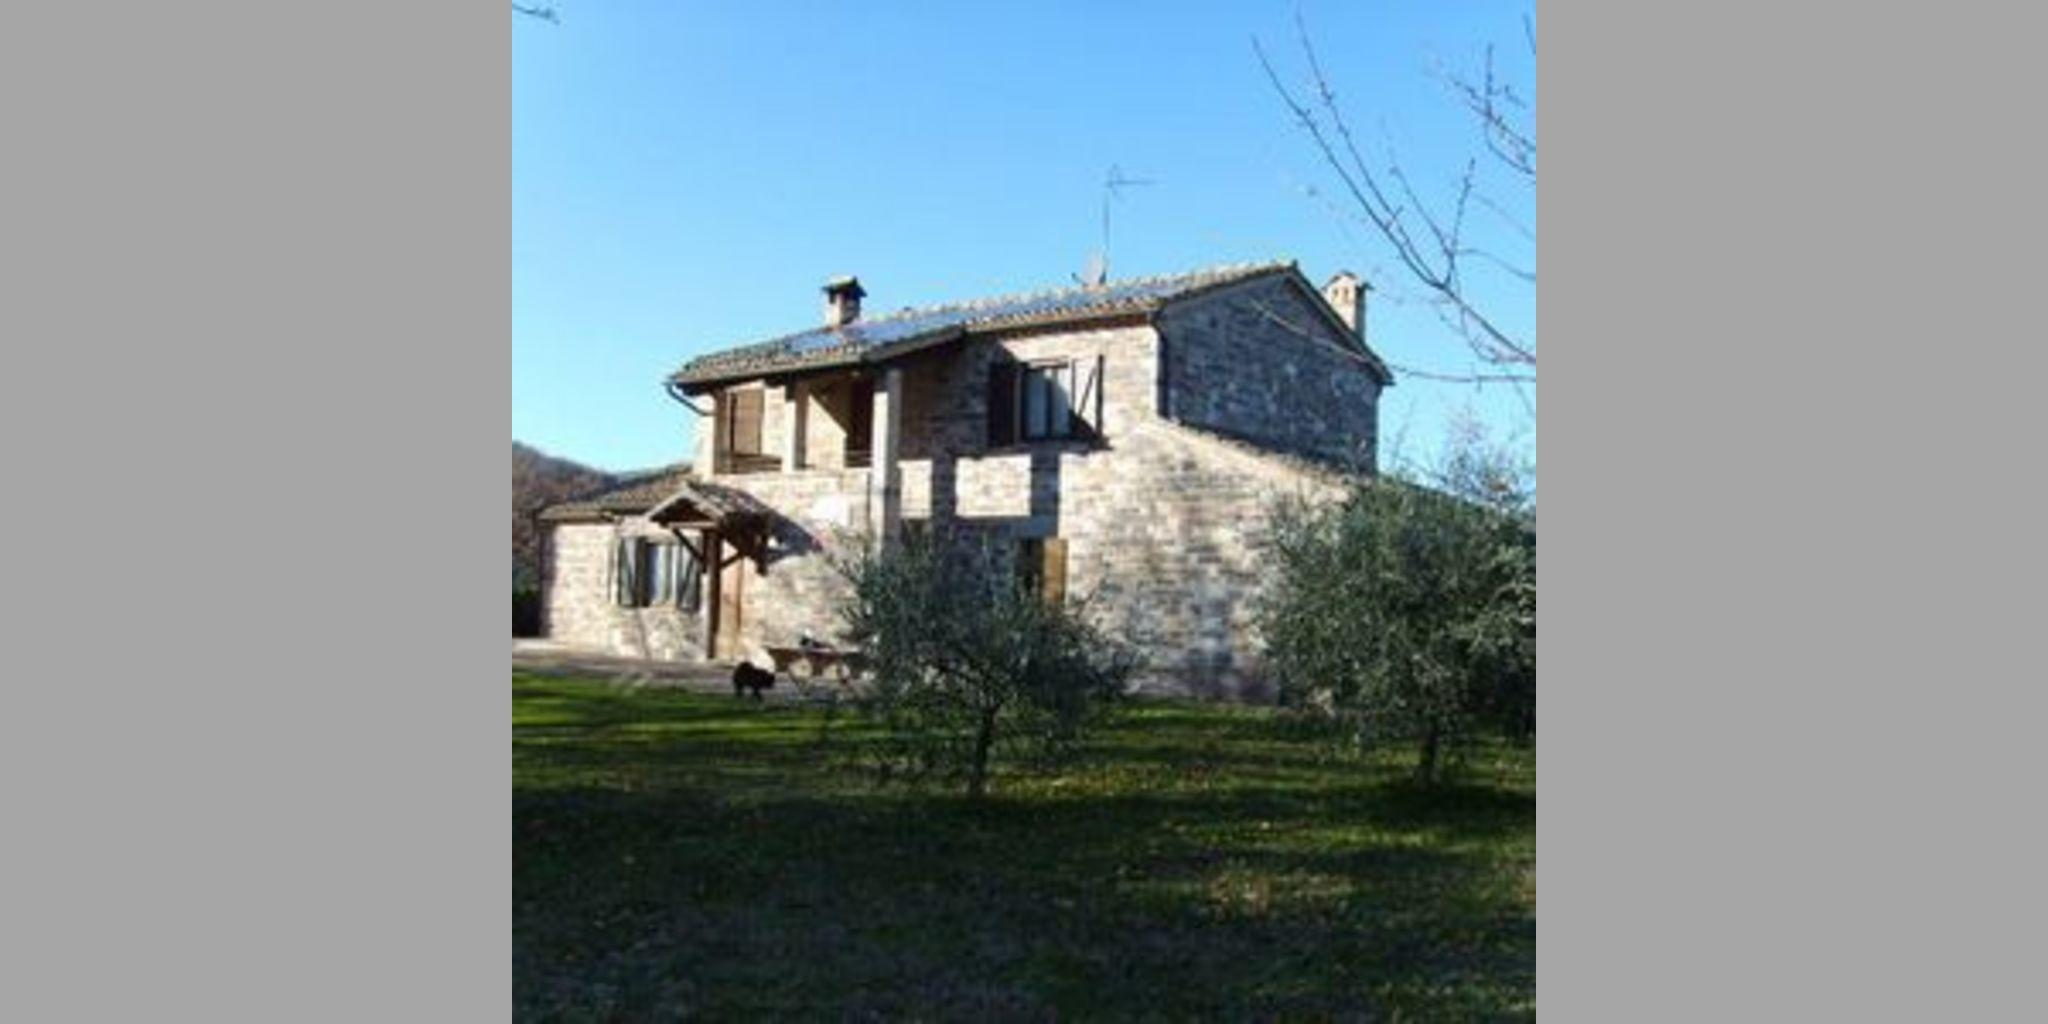 Bed & Breakfast San Severino Marche - Castello Al Monte